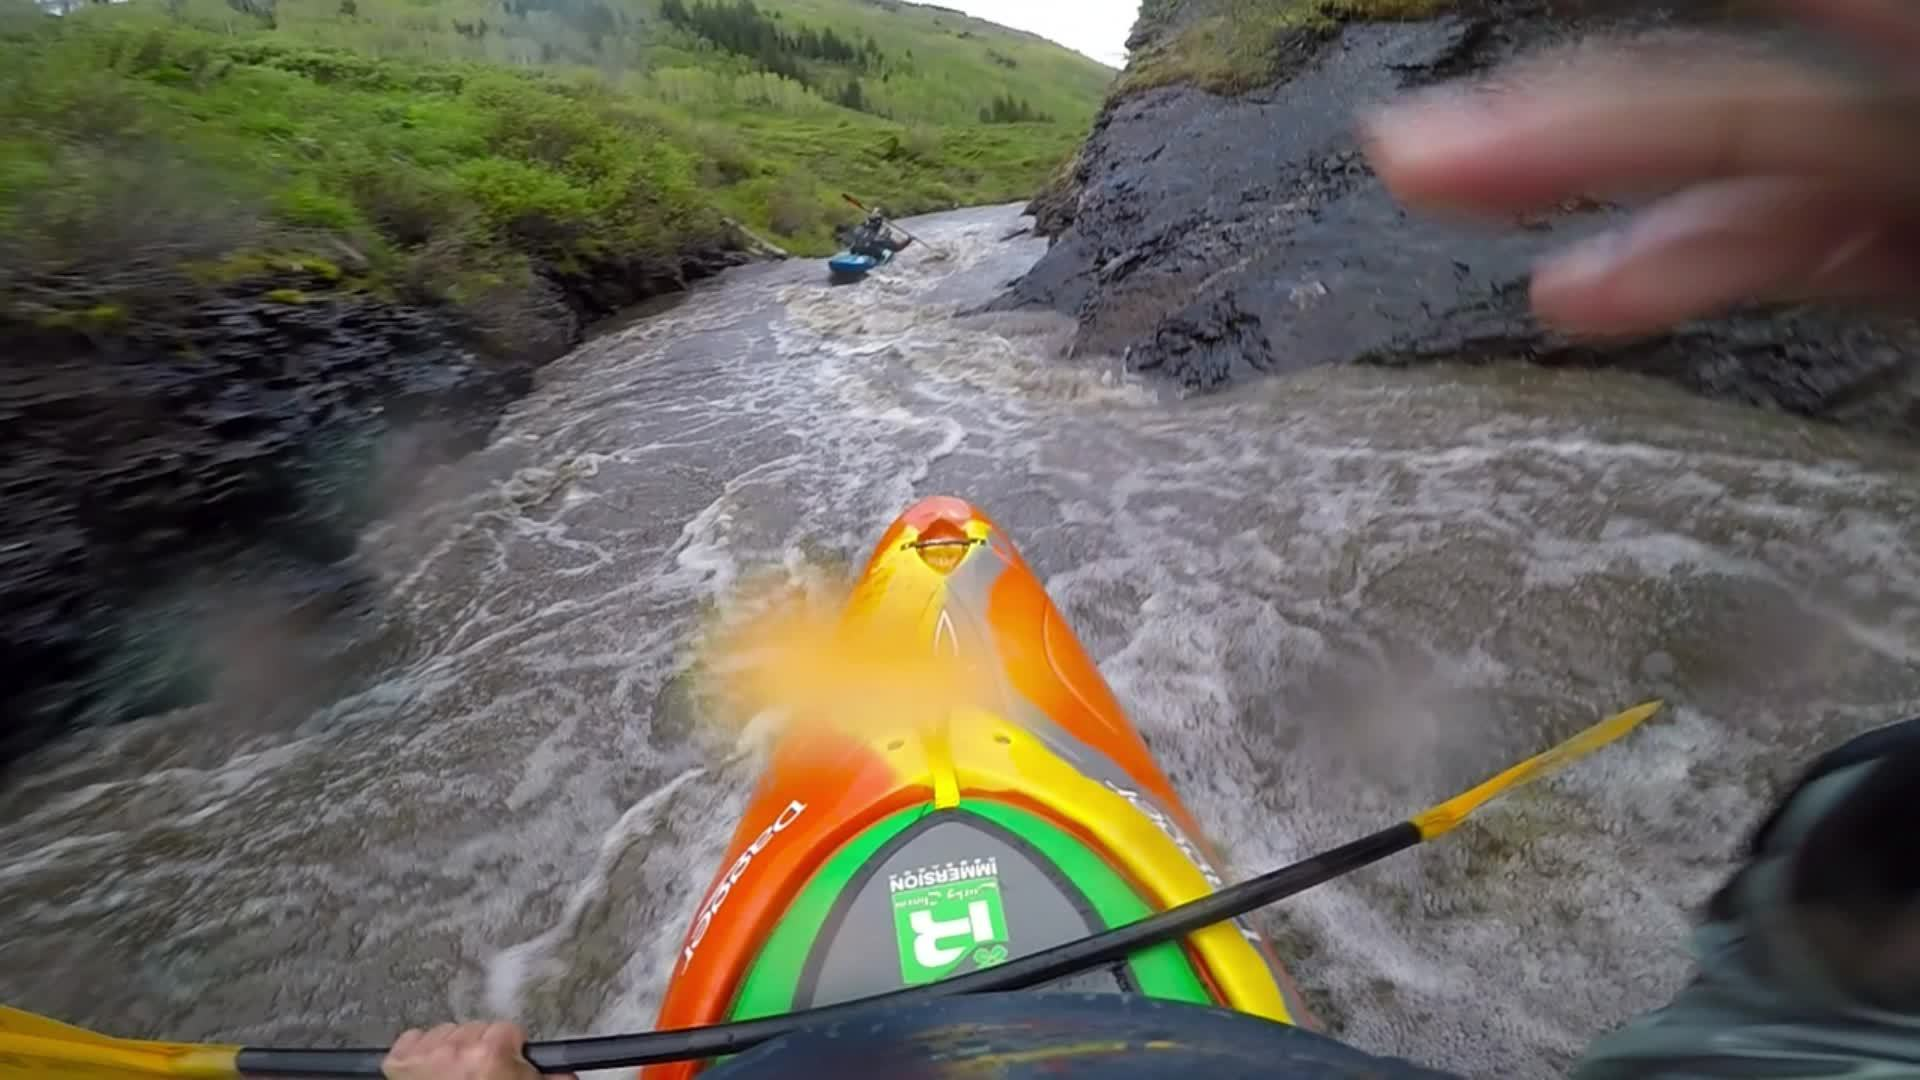 kayaking, whitewater, Untitled GIFs